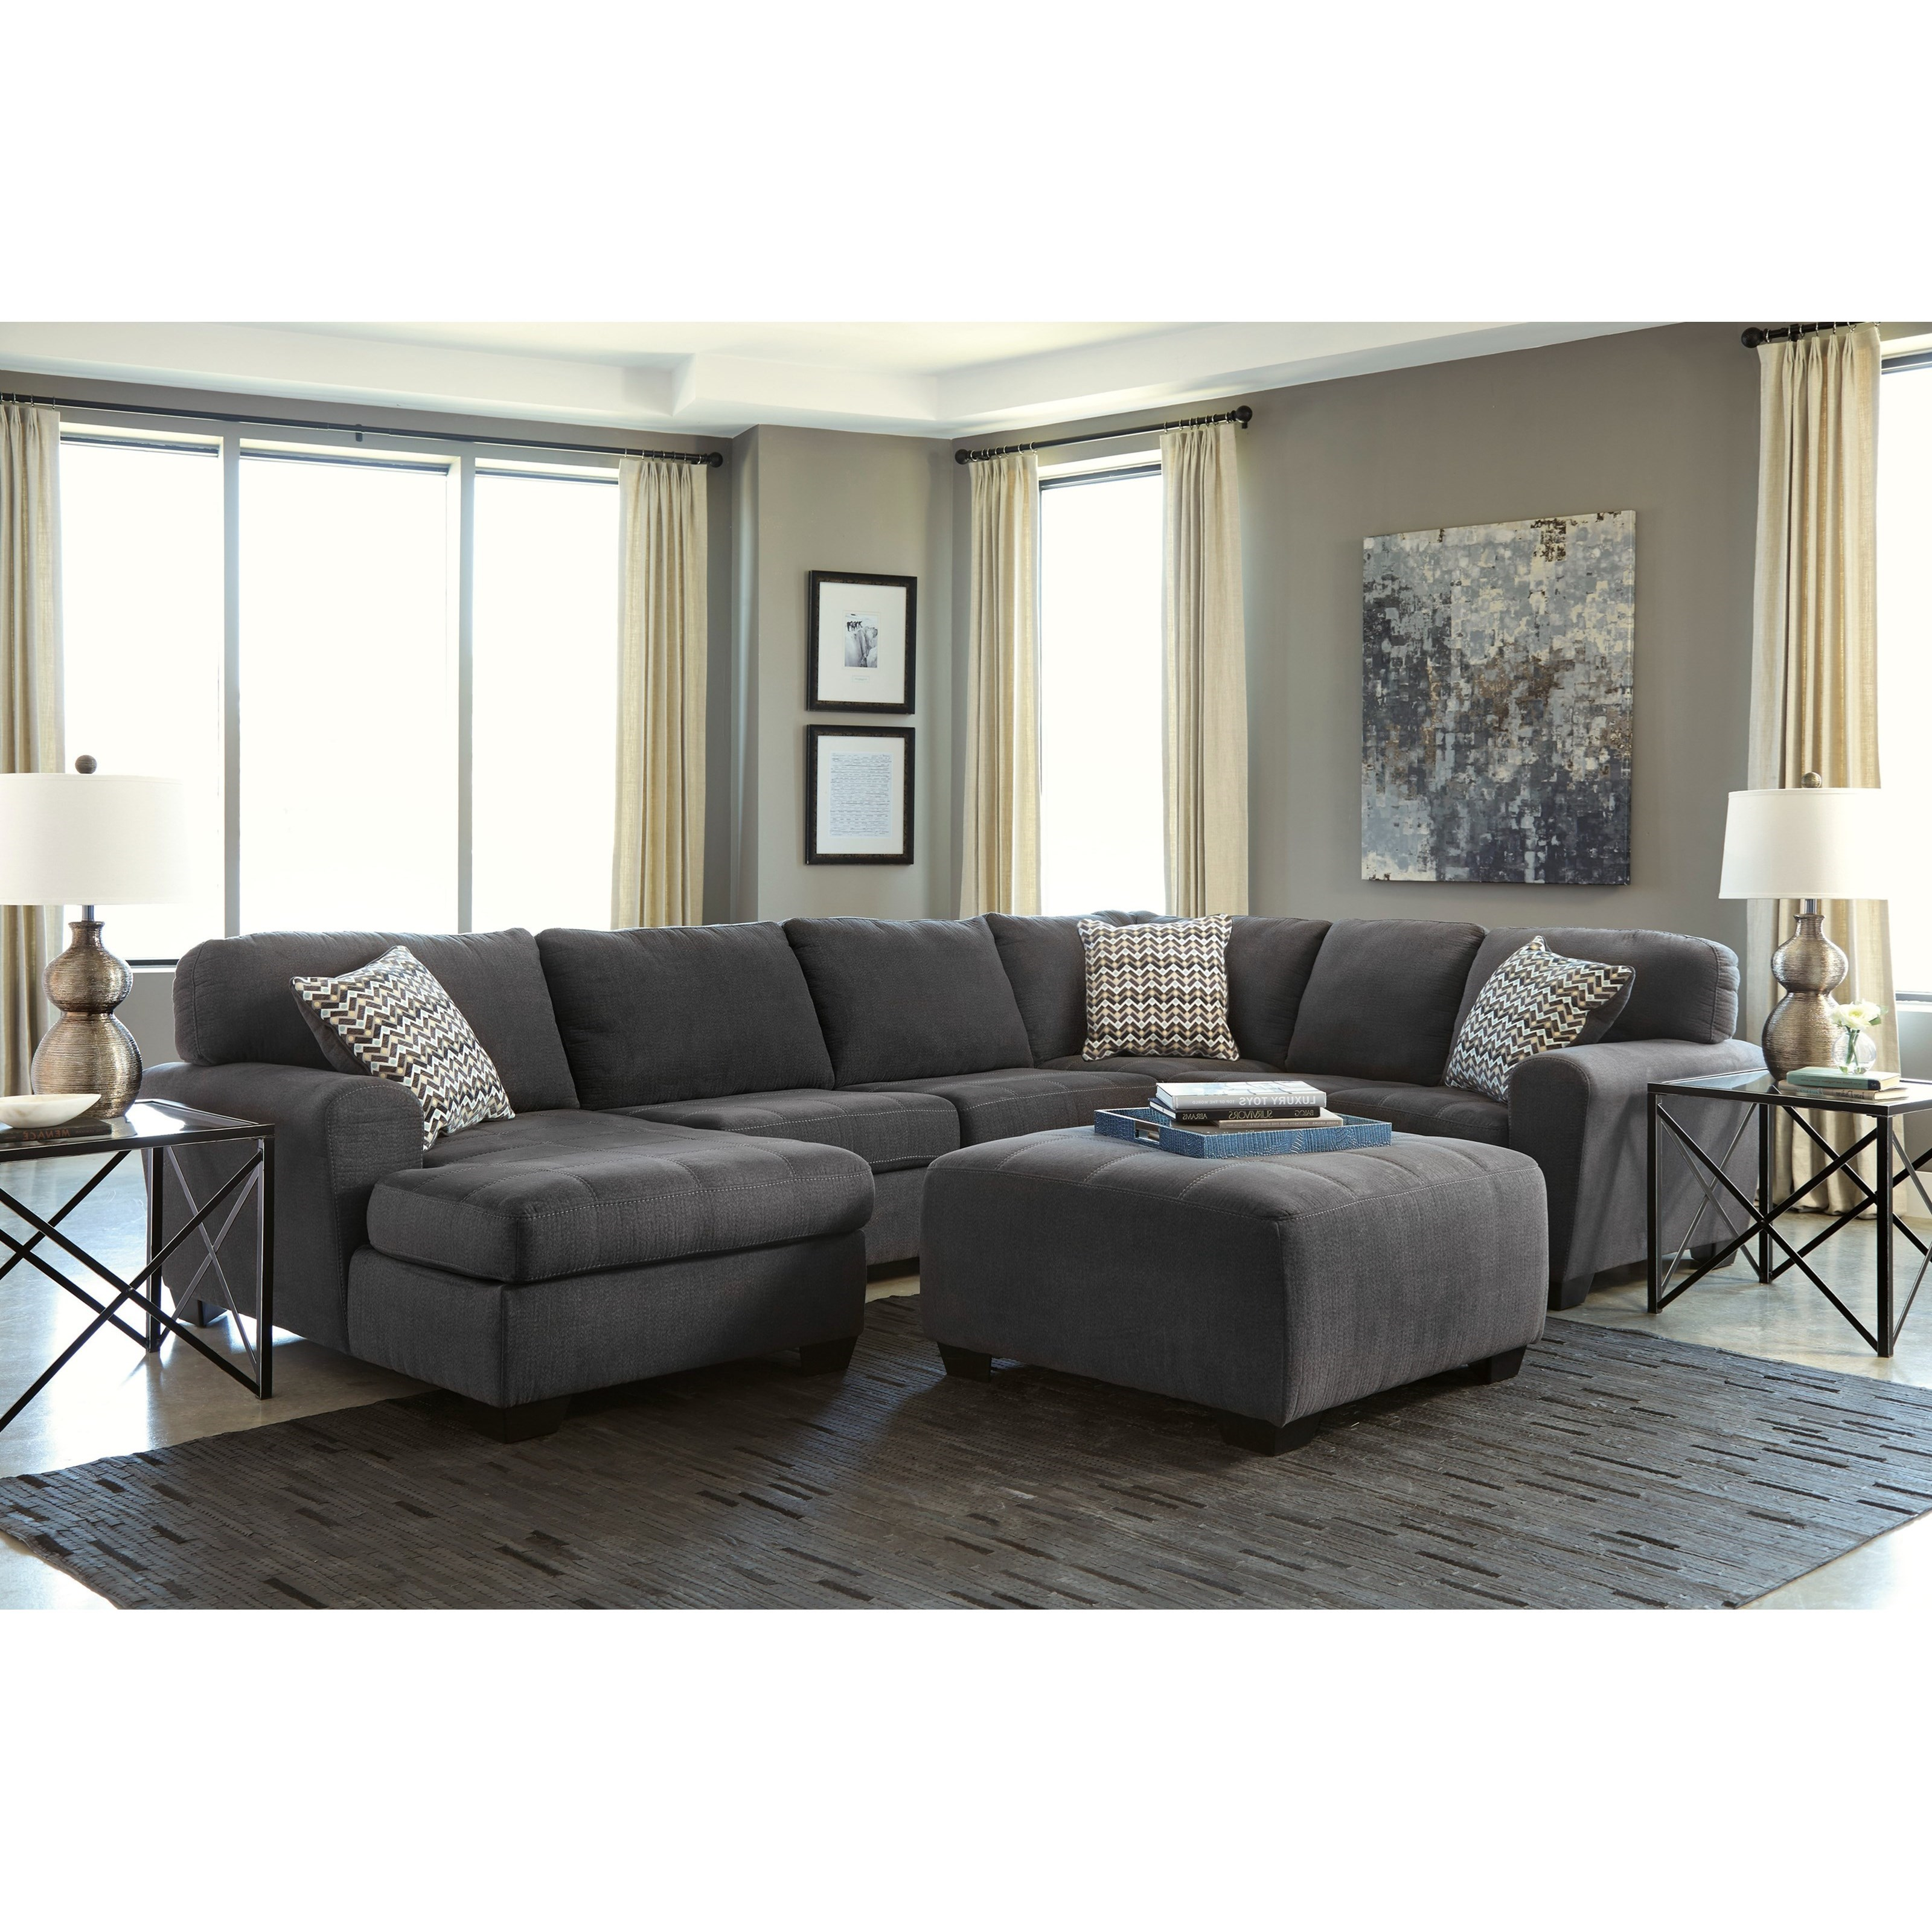 Ambee Living Room Group by Benchcraft at Simply Home by Lindy's